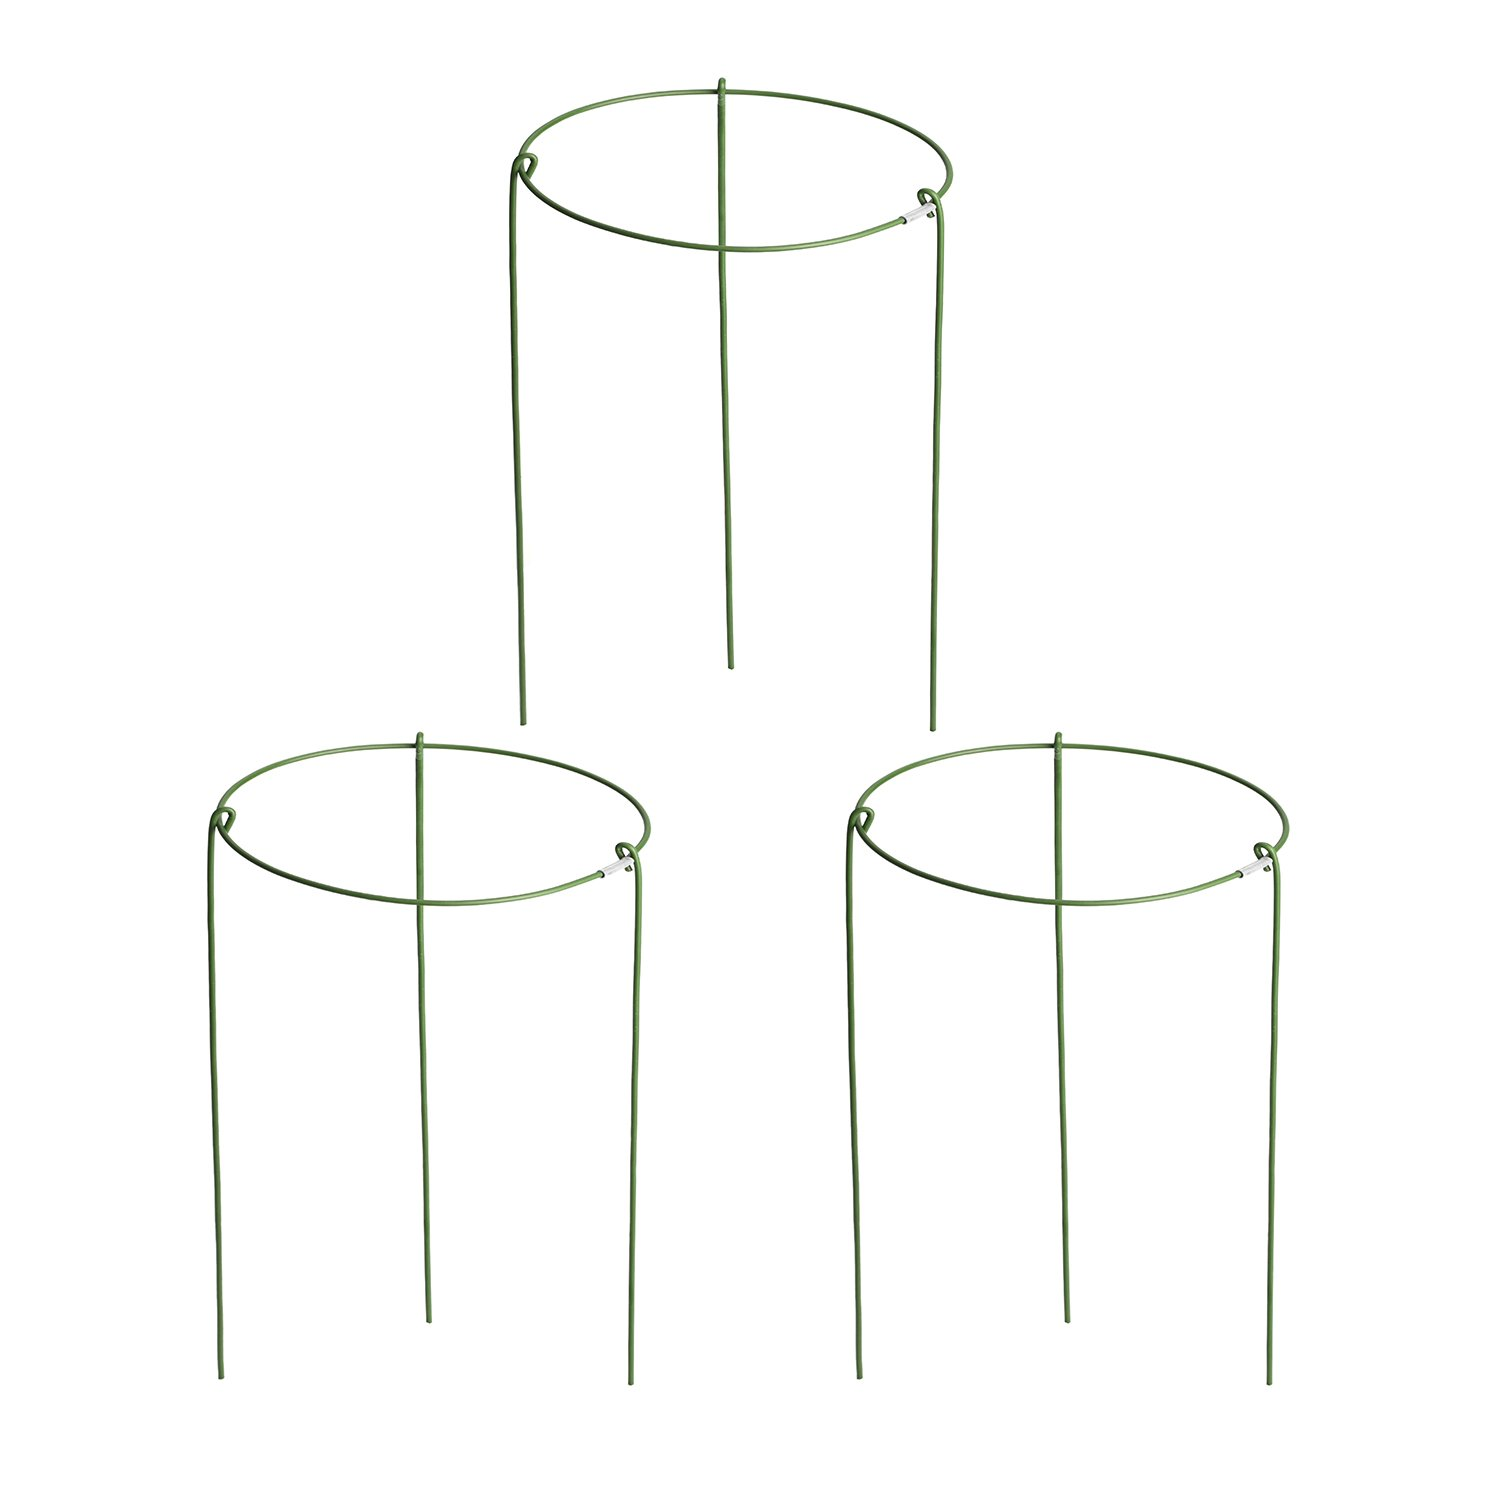 Funseedrr Garden Plant Supports Rings Single Hoop Mini Trellis, 3 pieces